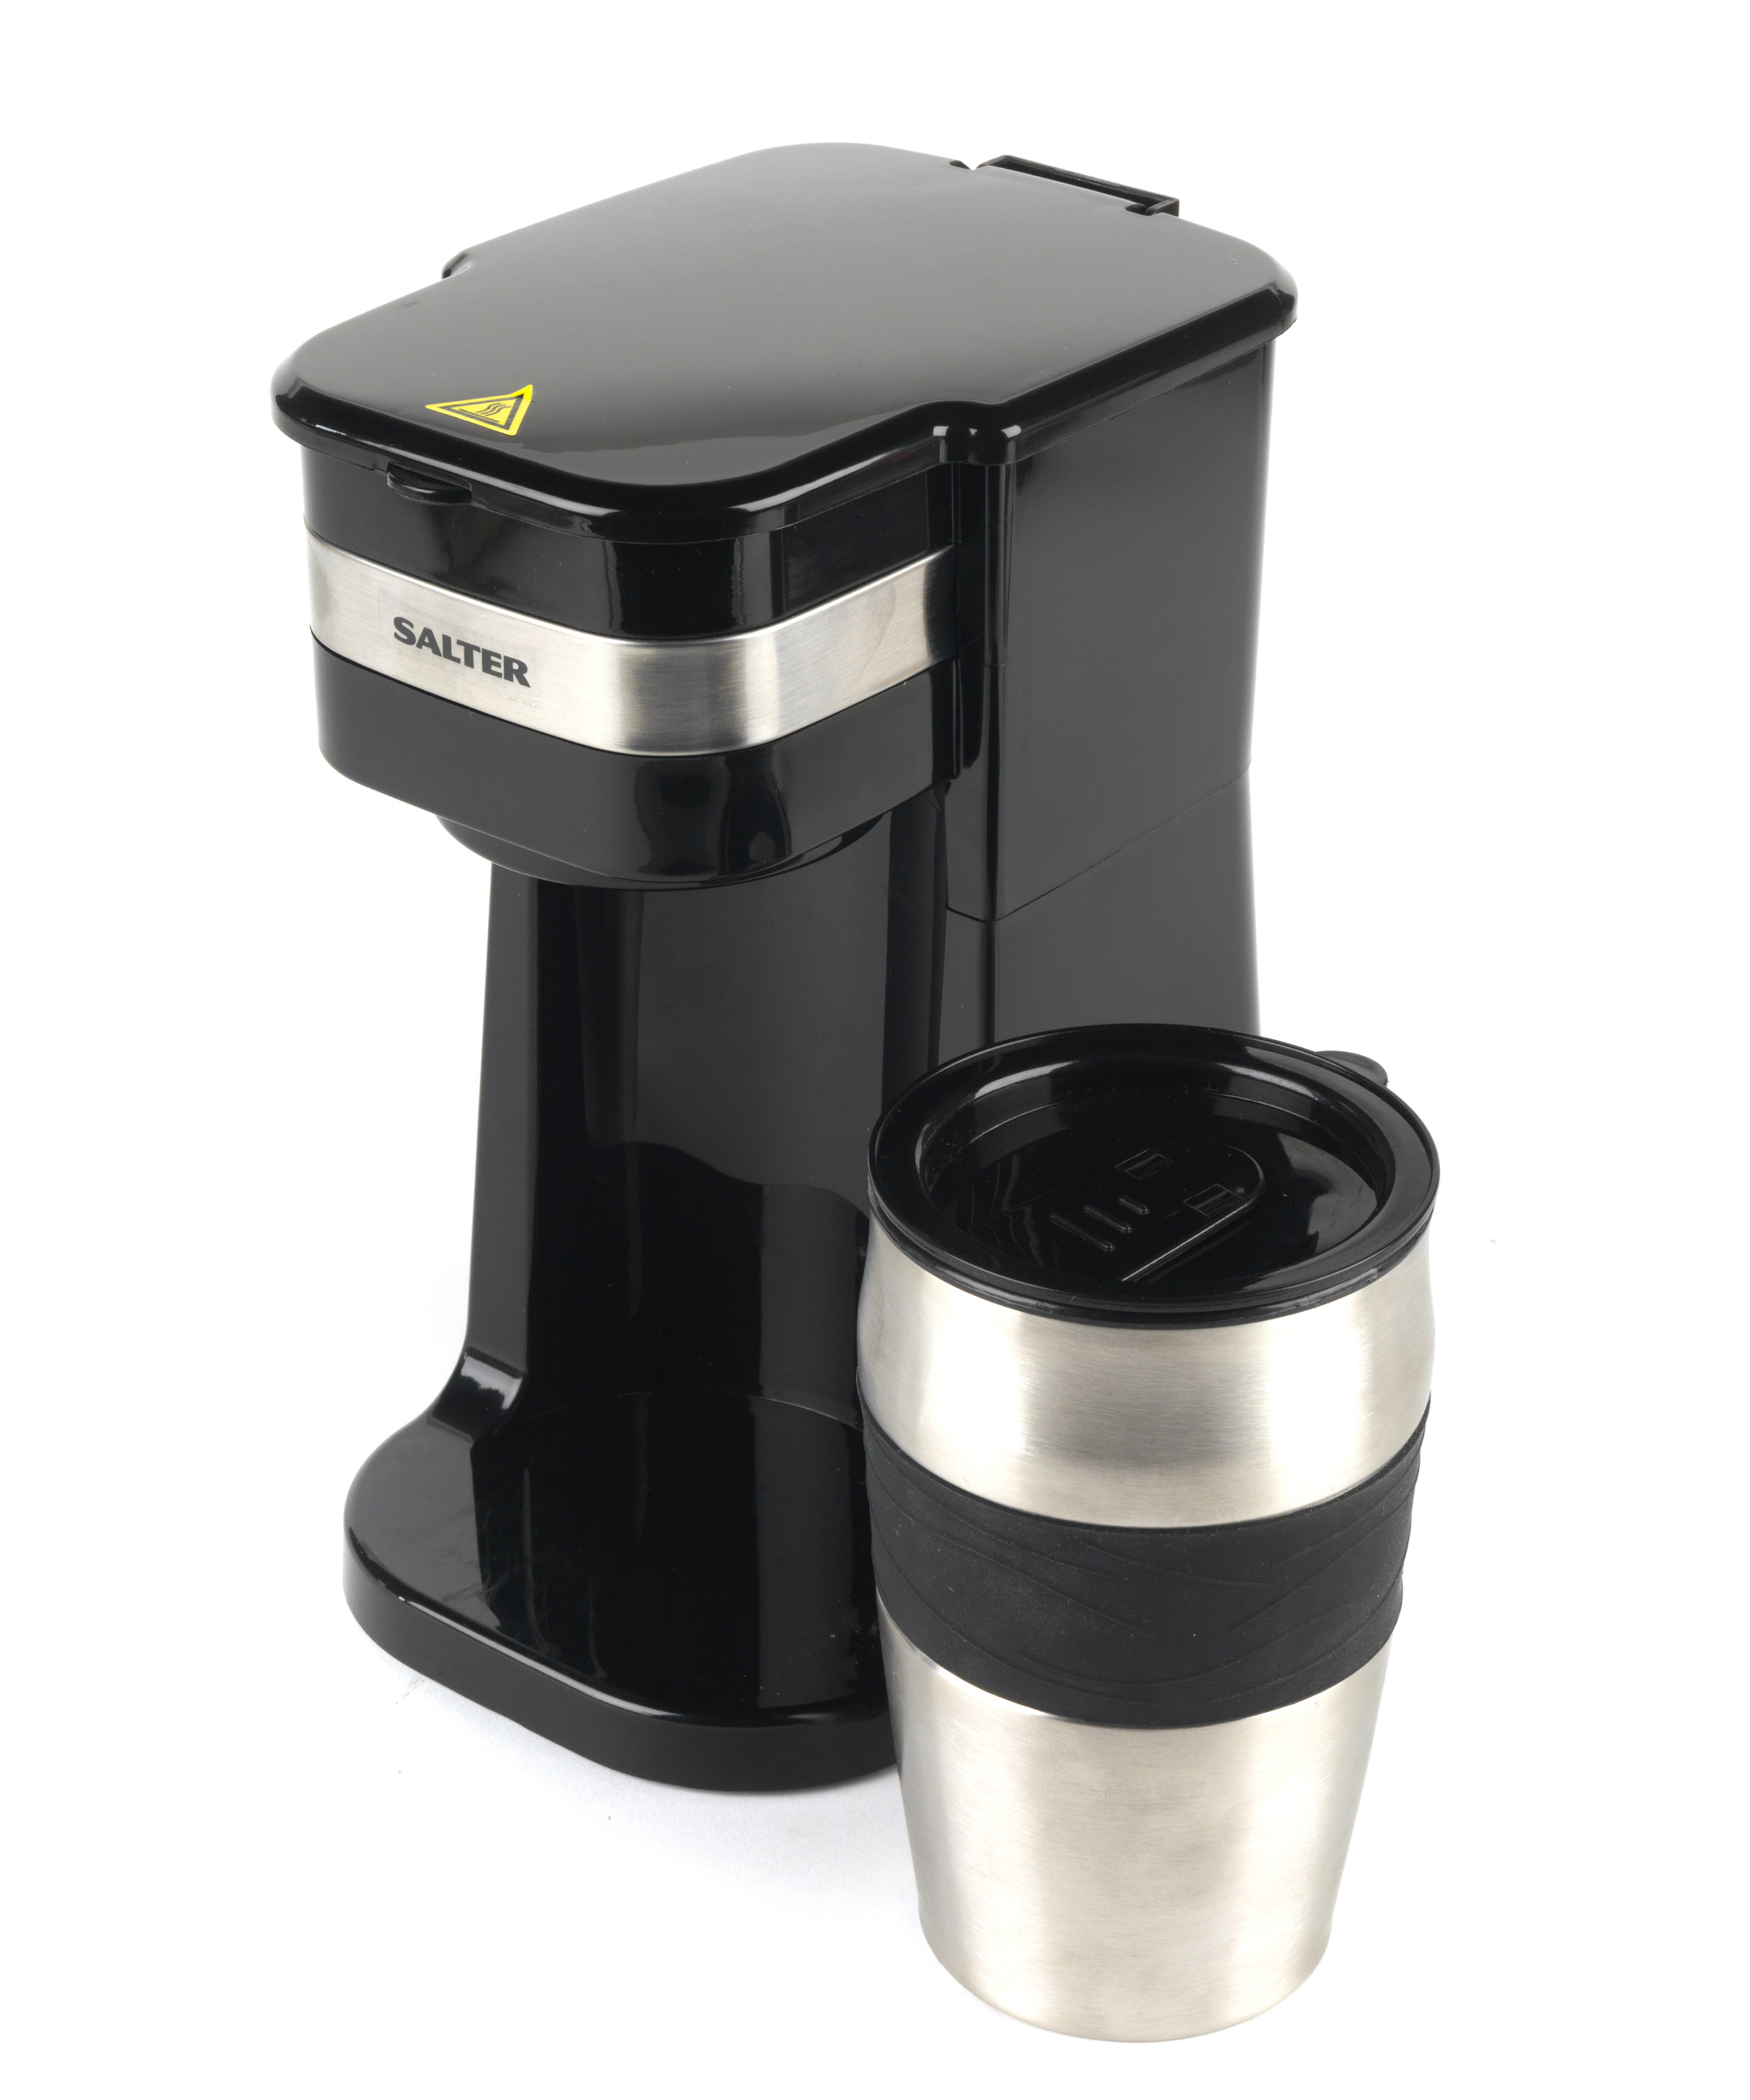 Salter Coffee Maker to Go Personal Filter Coffee Machine - Kitchen Tools - Salter